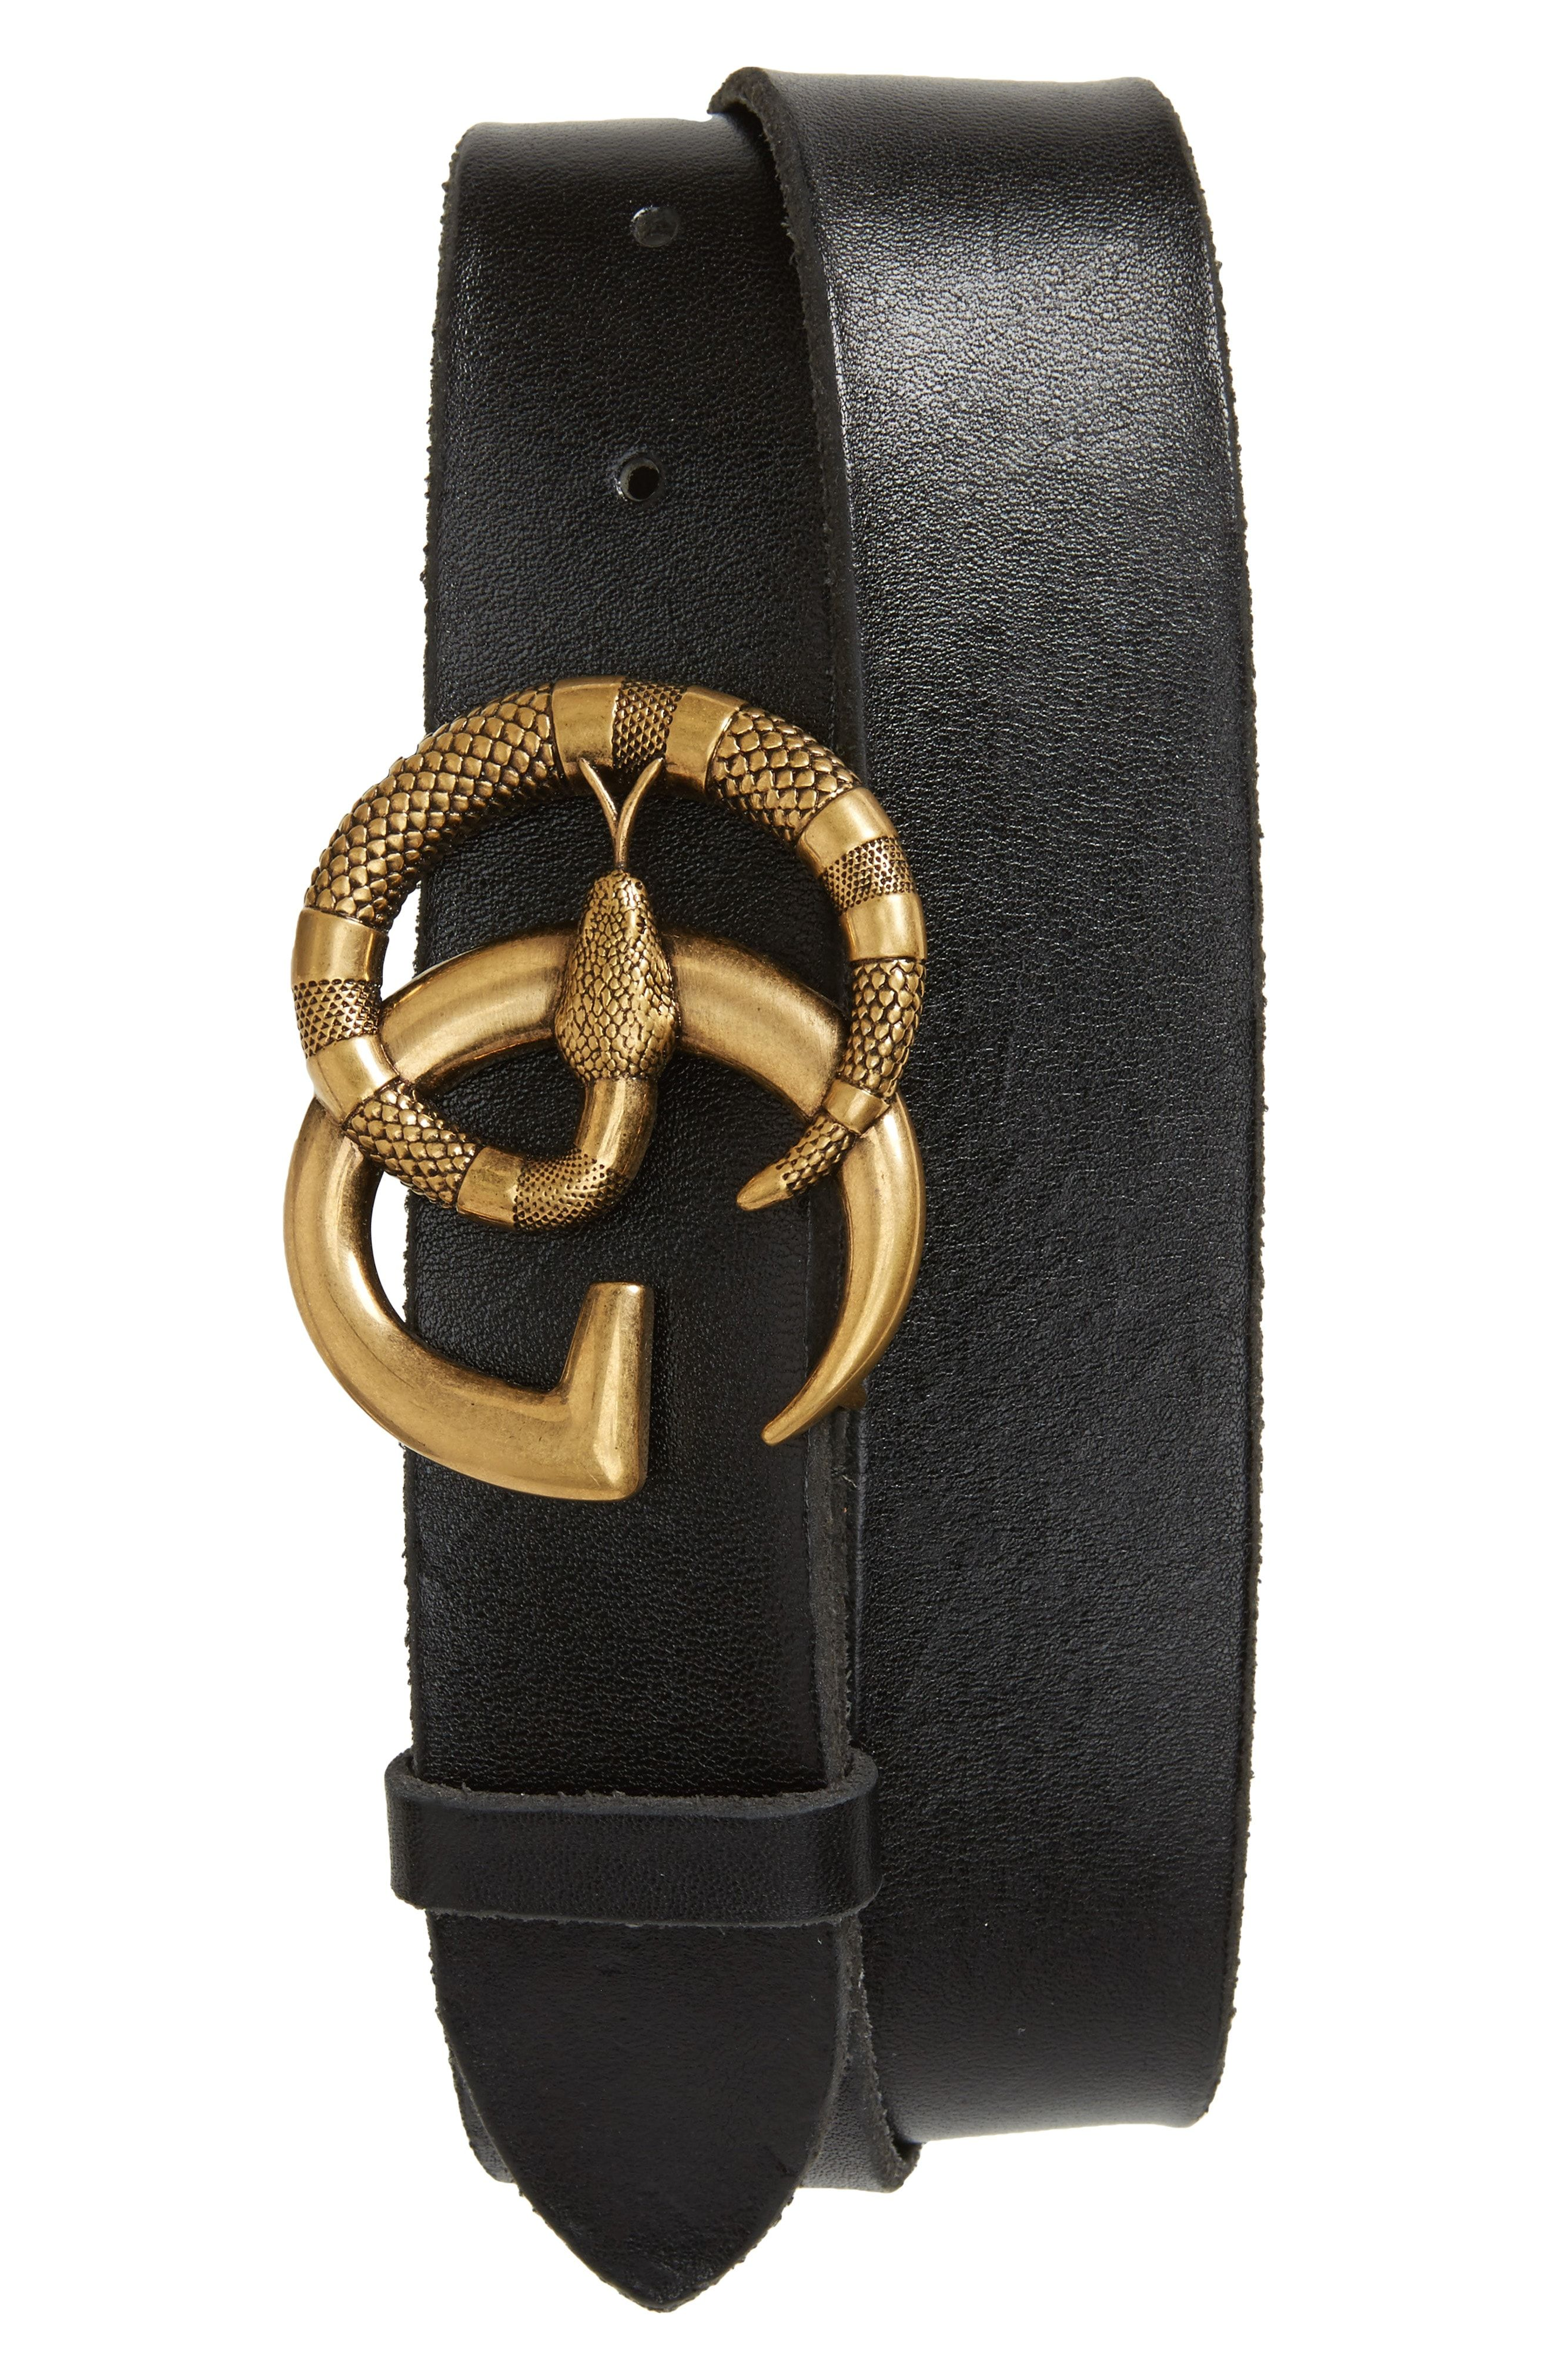 59310f1e8bf GUCCI LEATHER BELT WITH DOUBLE G BUCKLE WITH SNAKE